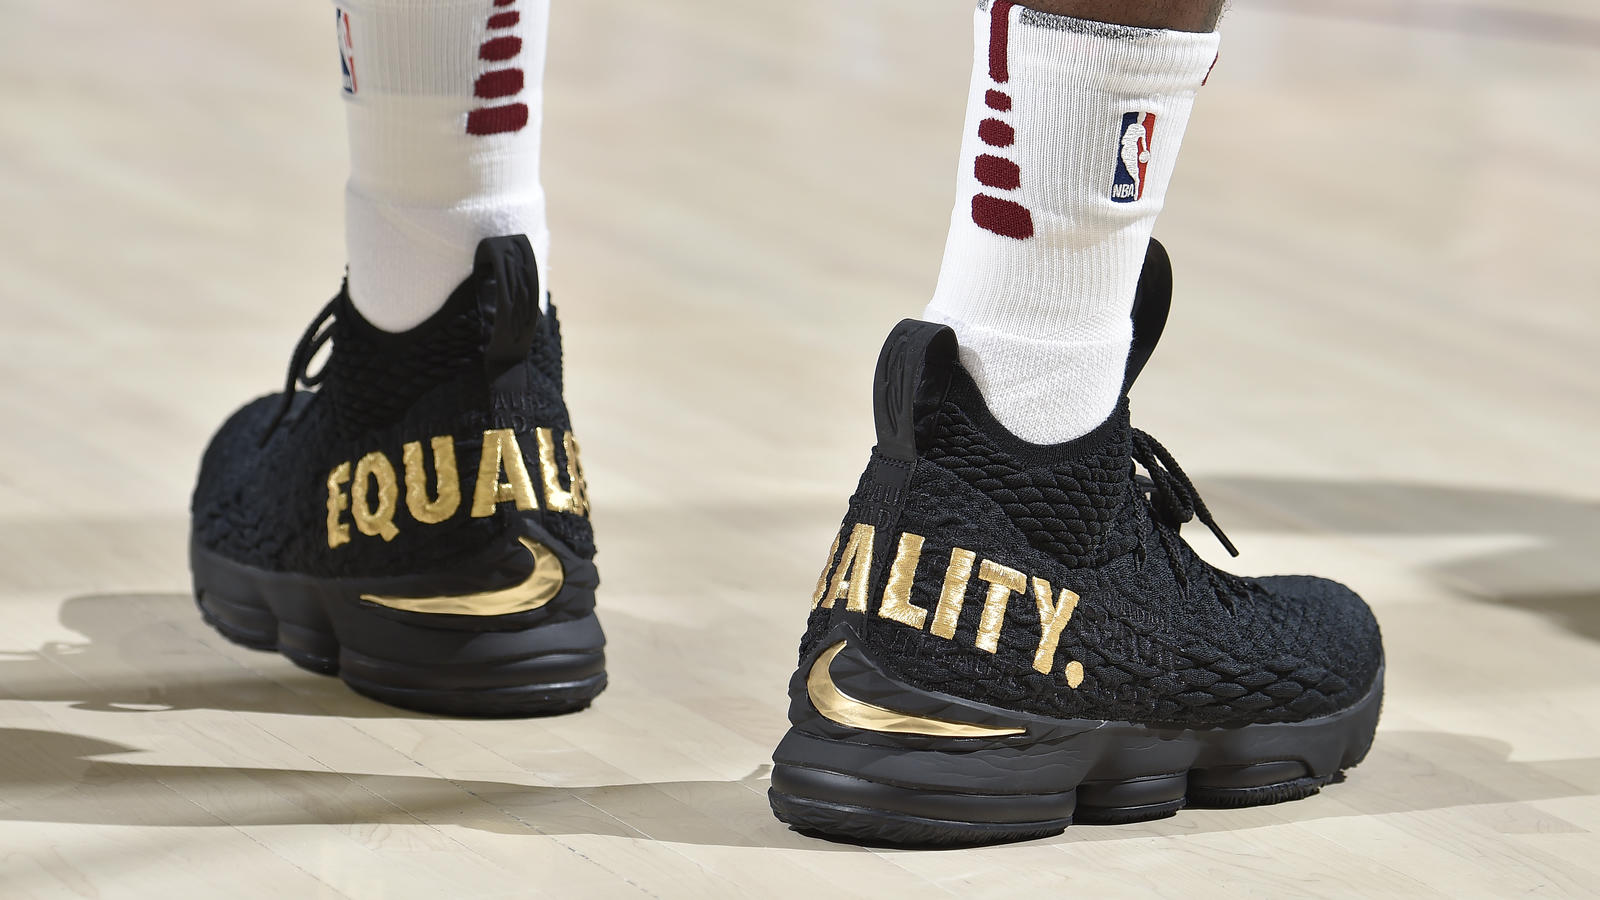 the latest ac699 865b5 How to Get the LeBron XV EQUALITY 0. The Nike LeBron 15